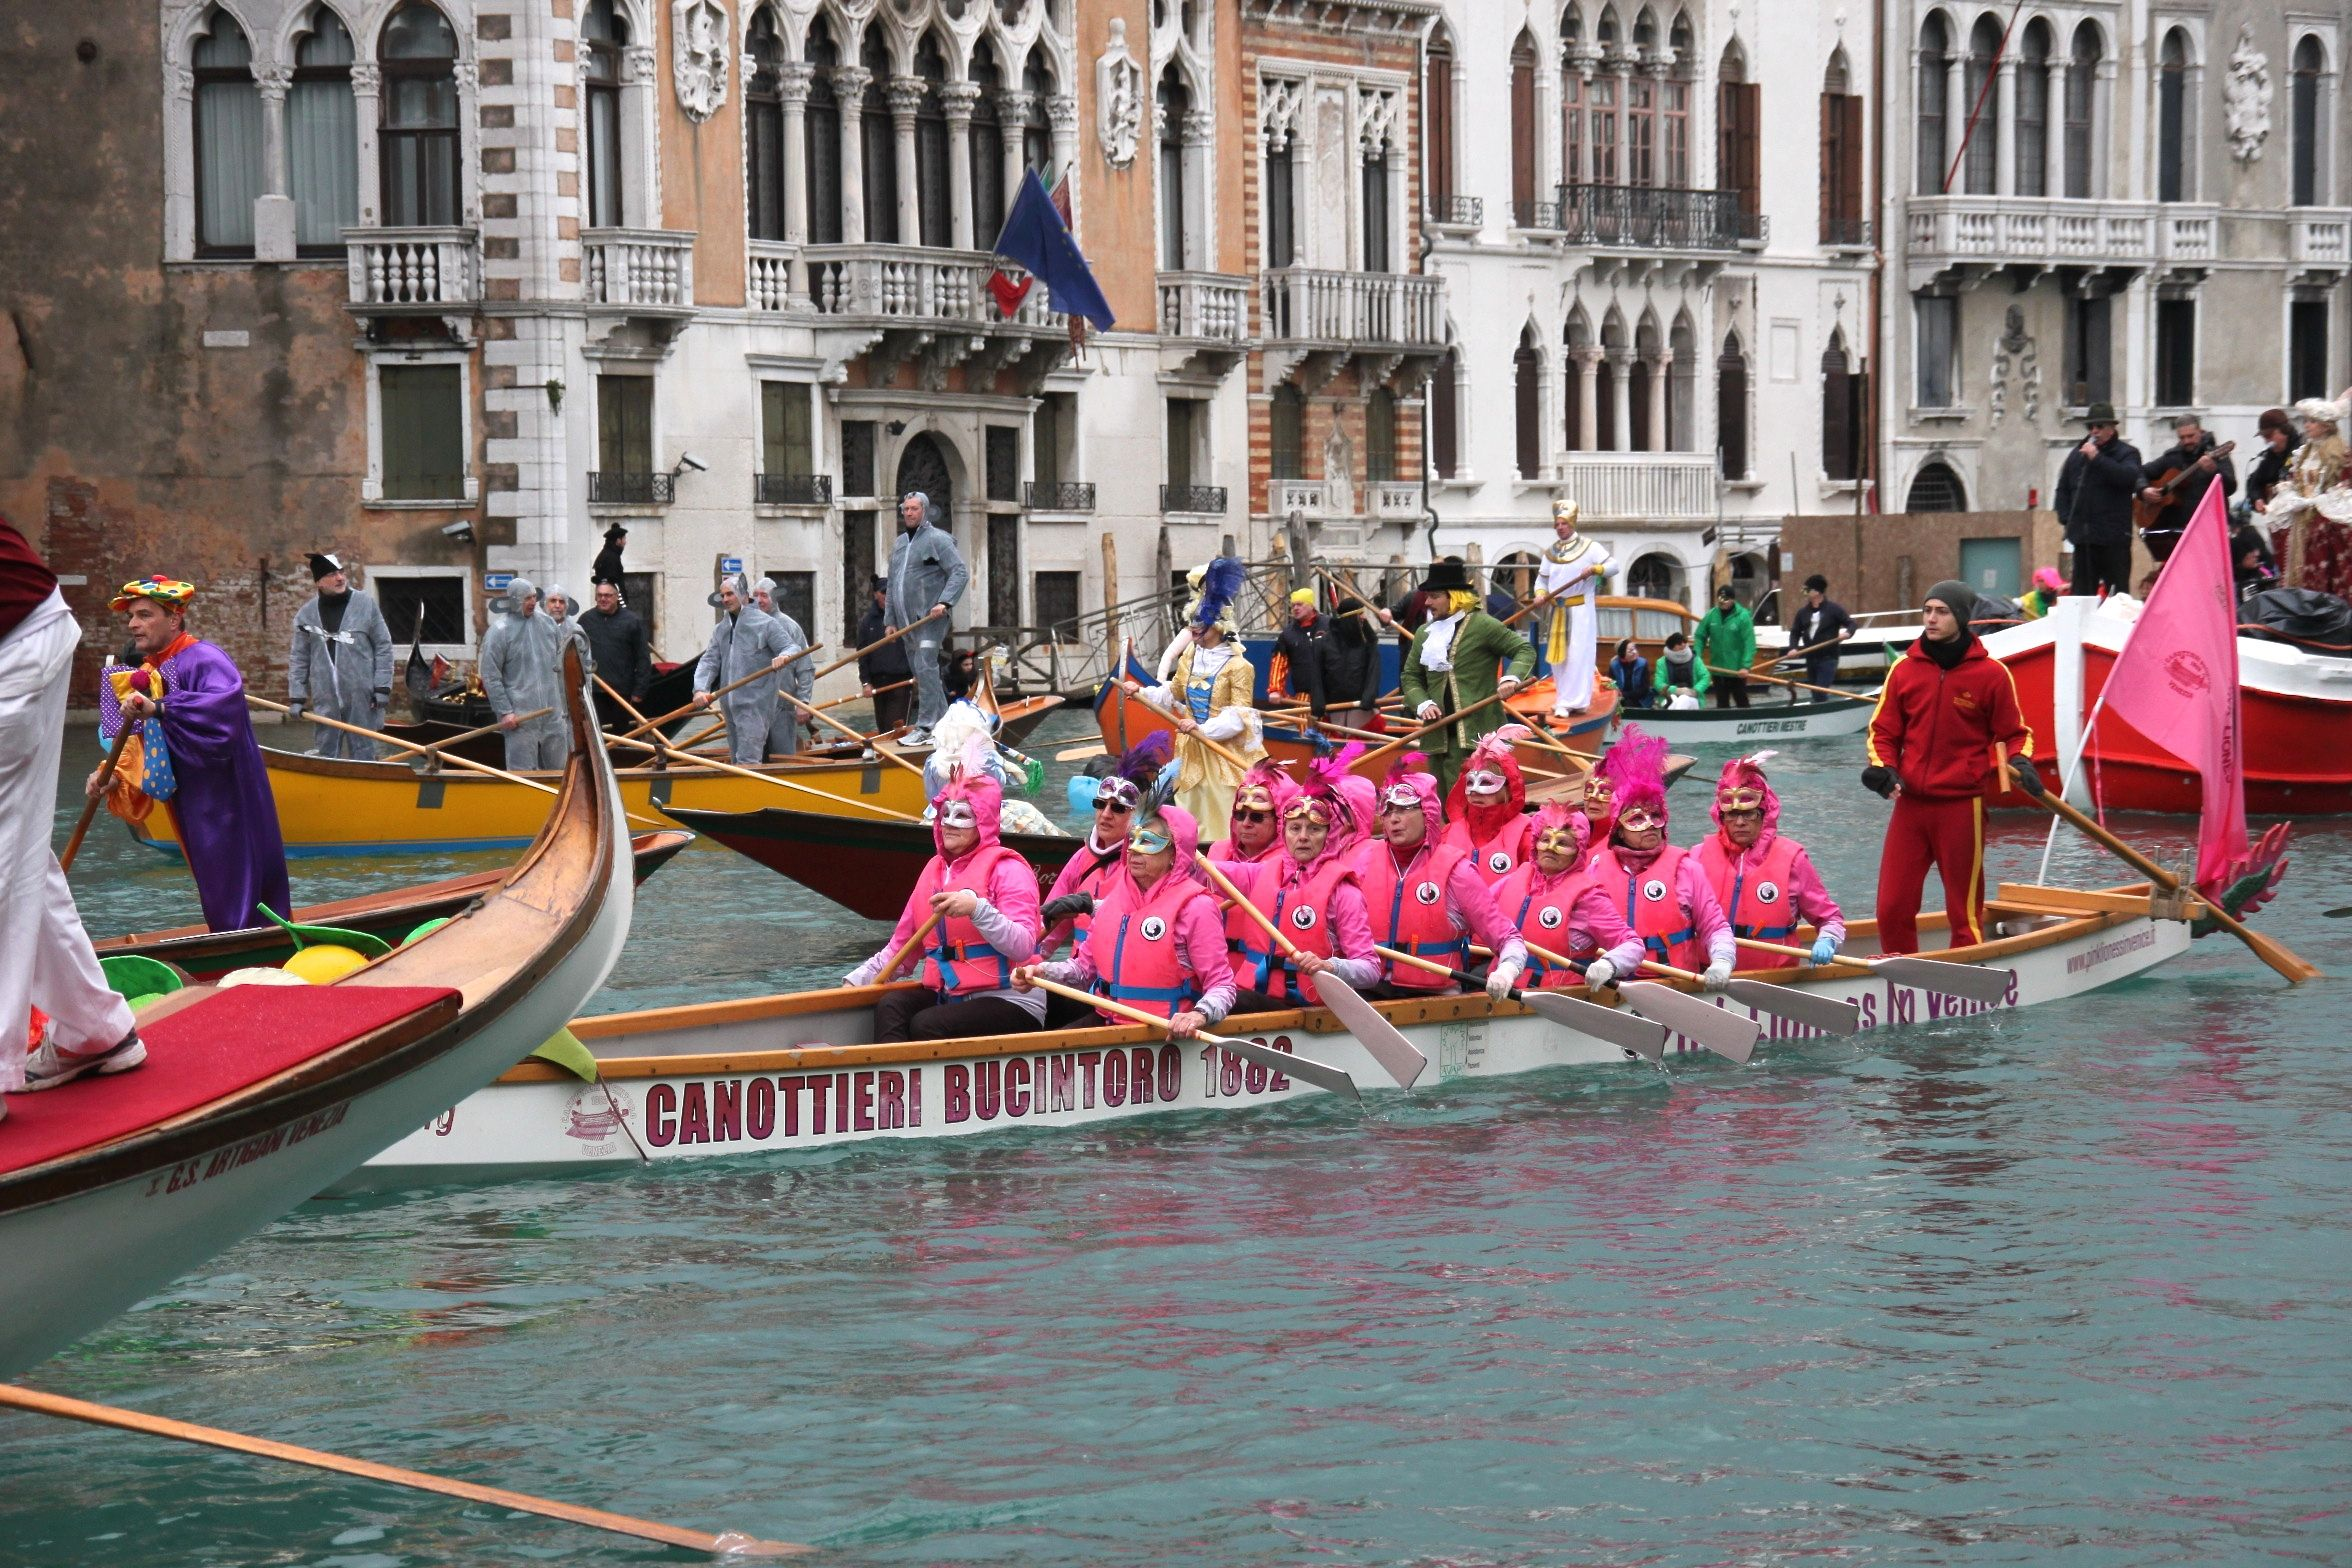 Venice Carnival Water Parade - Venice's pink lioness dragon boat rowers - all breast cancer survivors